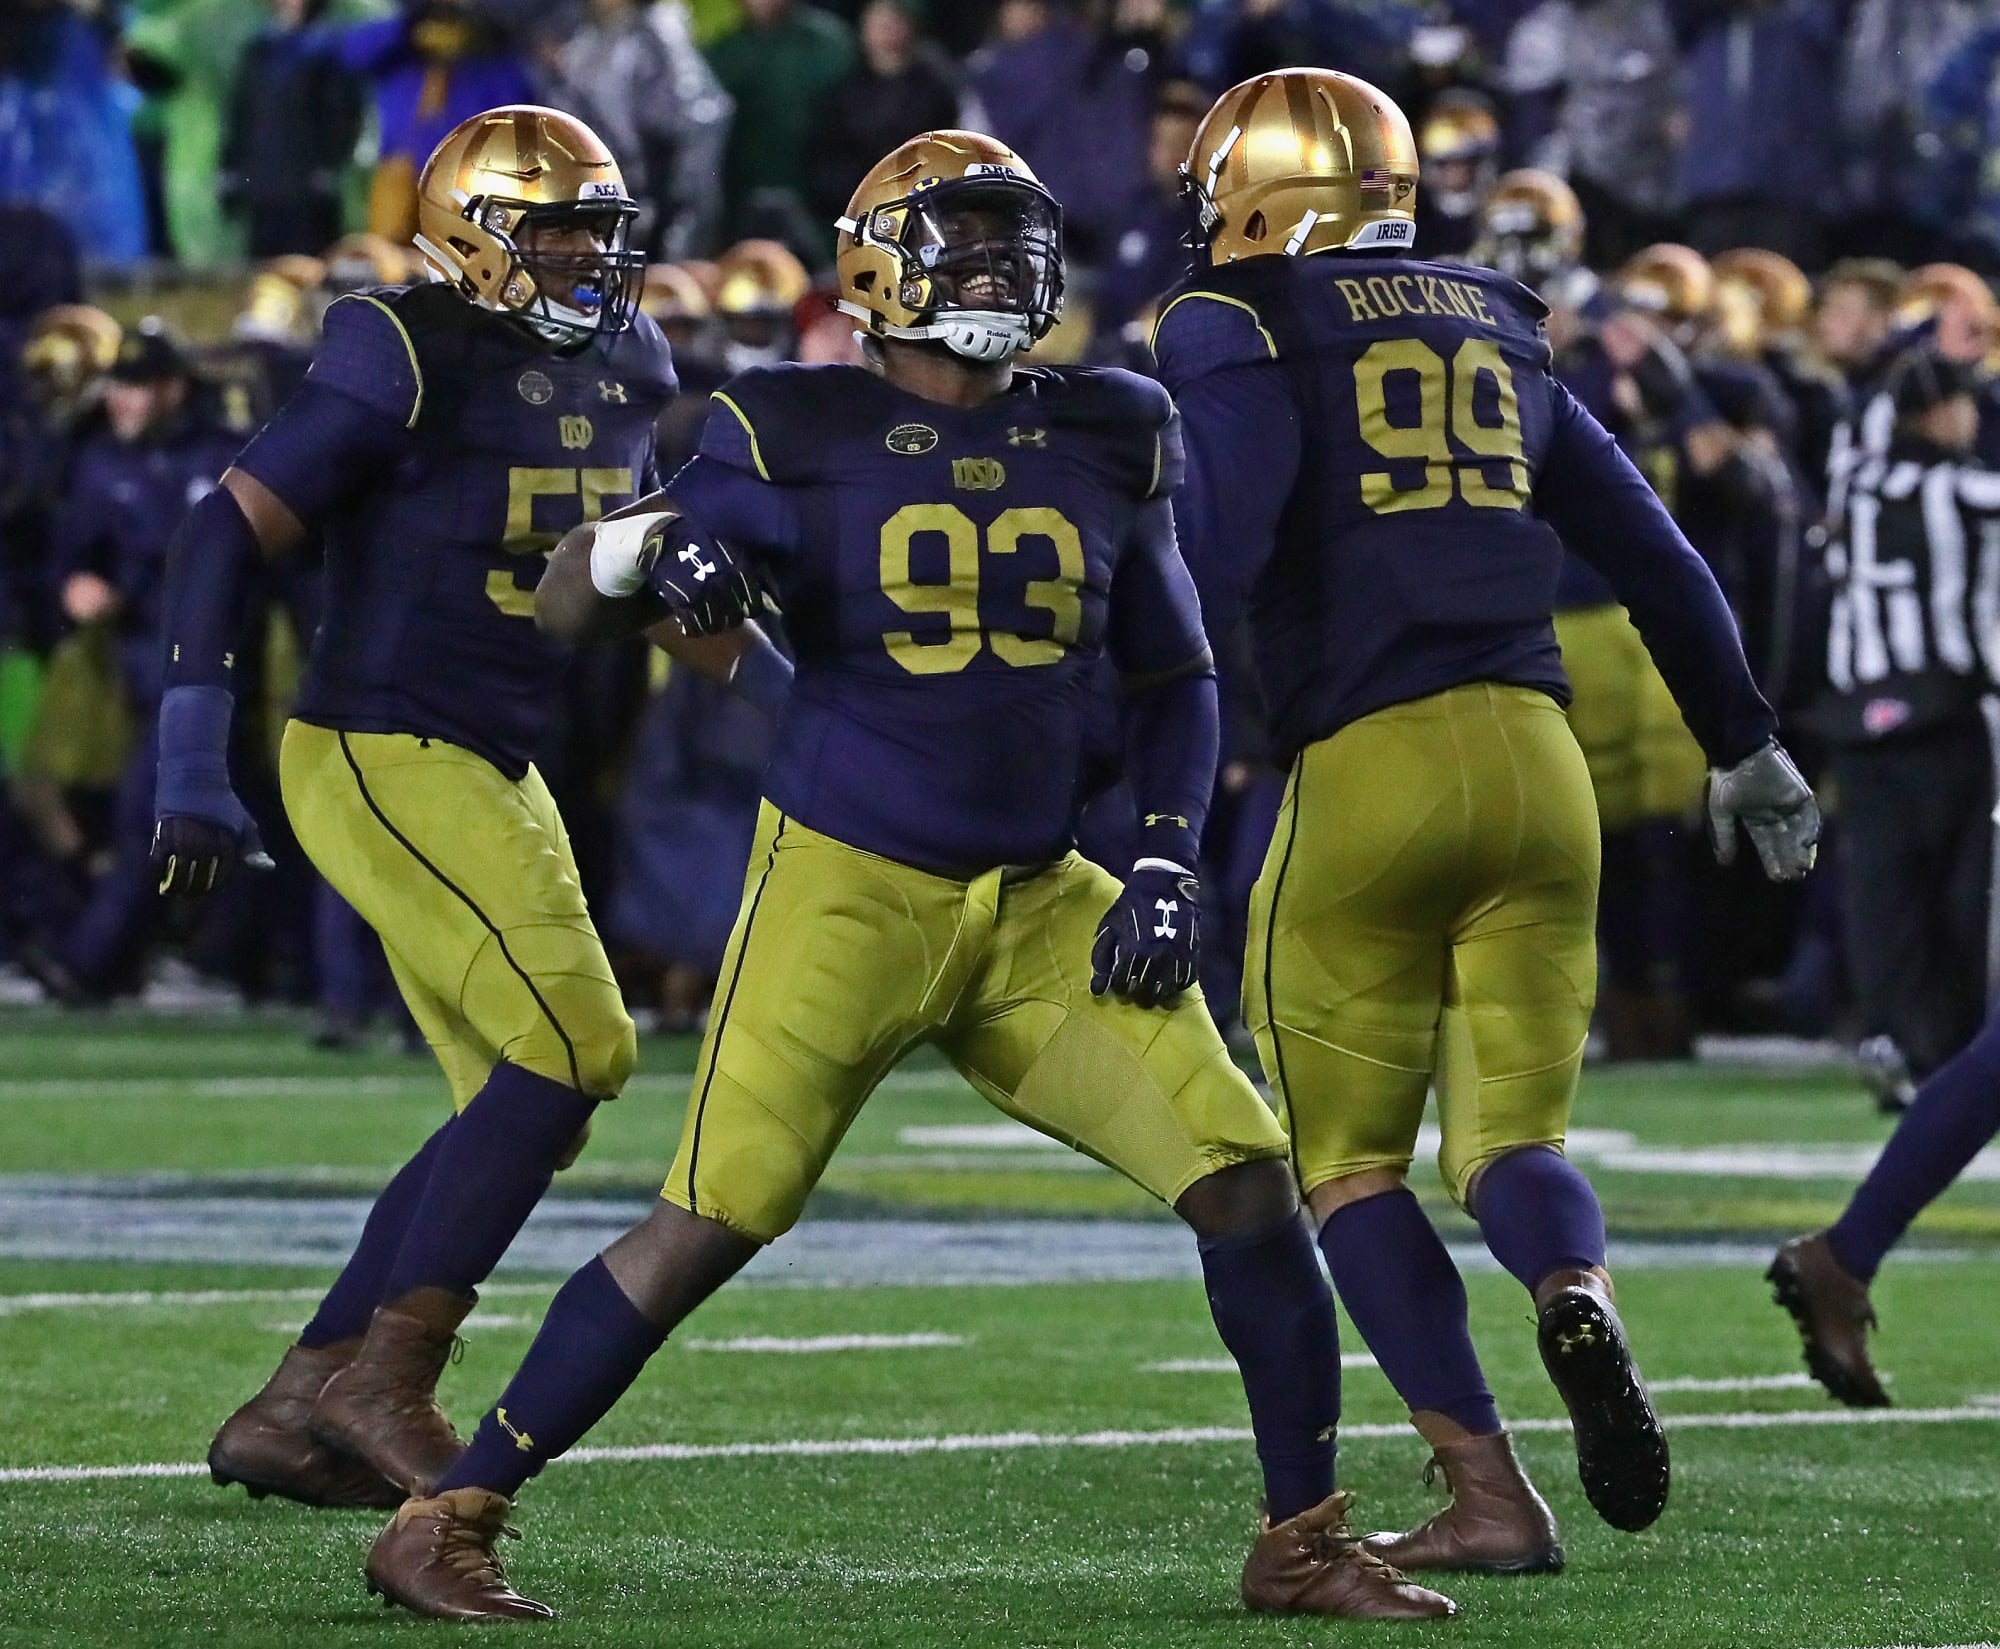 Notre Dame Football: Kareem, Others Set to Step Up in 2018